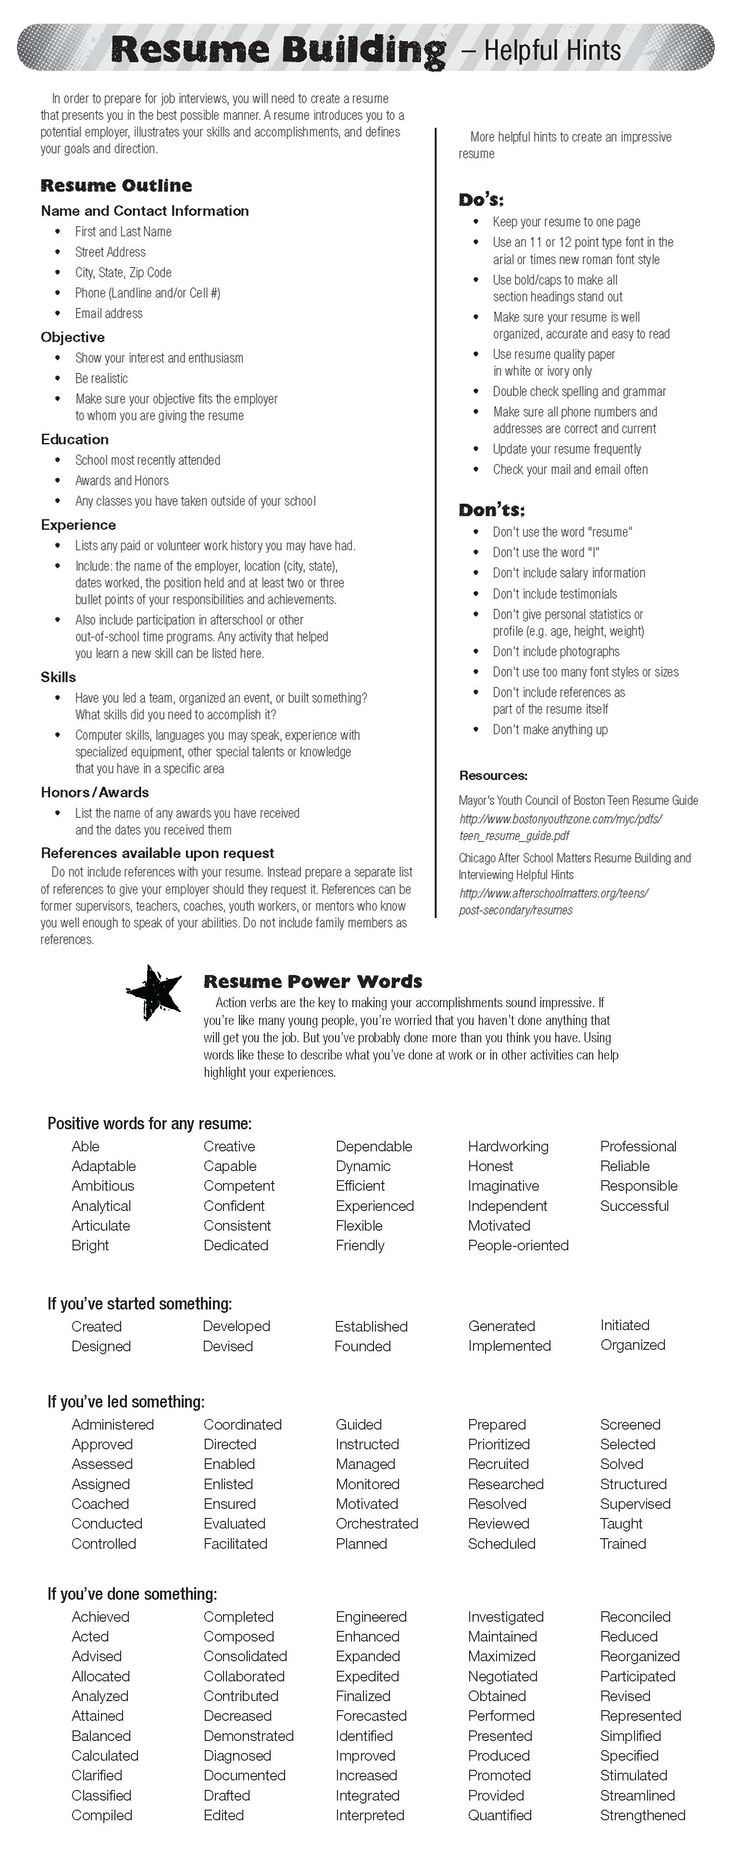 western civilization s historial guide to the job search infographic jobs jobsearch - Job Resume Help